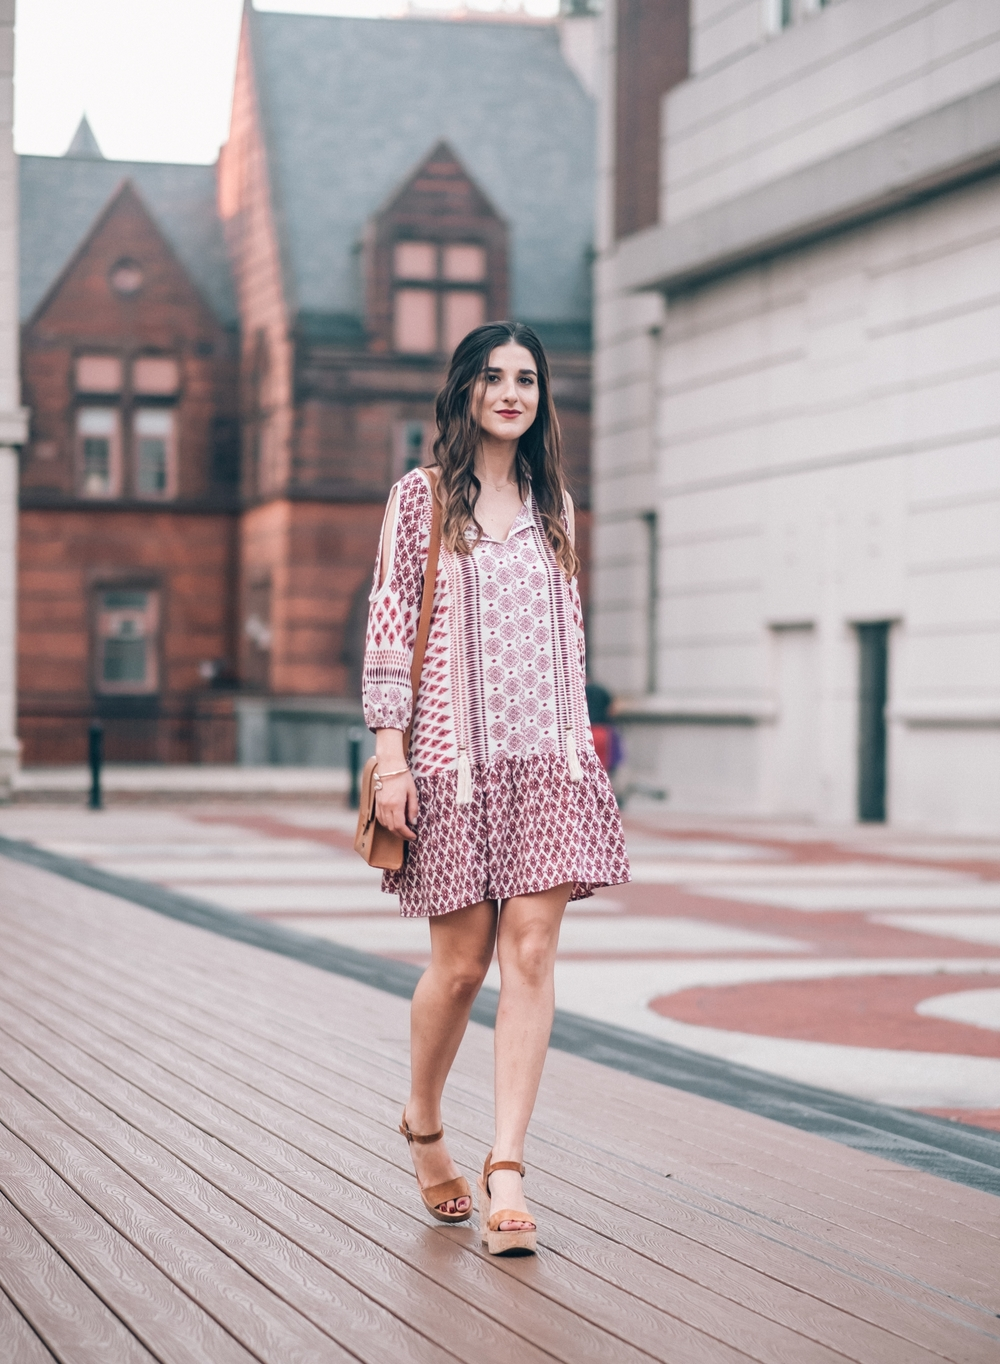 Printed Boho Dress West Kei Louboutins & Love Fashion Blog Esther Santer NYC Street Style Blogger Outfit OOTD Trendy Tassels Pattern Tan Crossbody Bag Elk Accessories Jeweled Snake Bracelet Hair Inspo Gold Summer Choker Dolce Vita Cork Wedges Jewelry.jpg